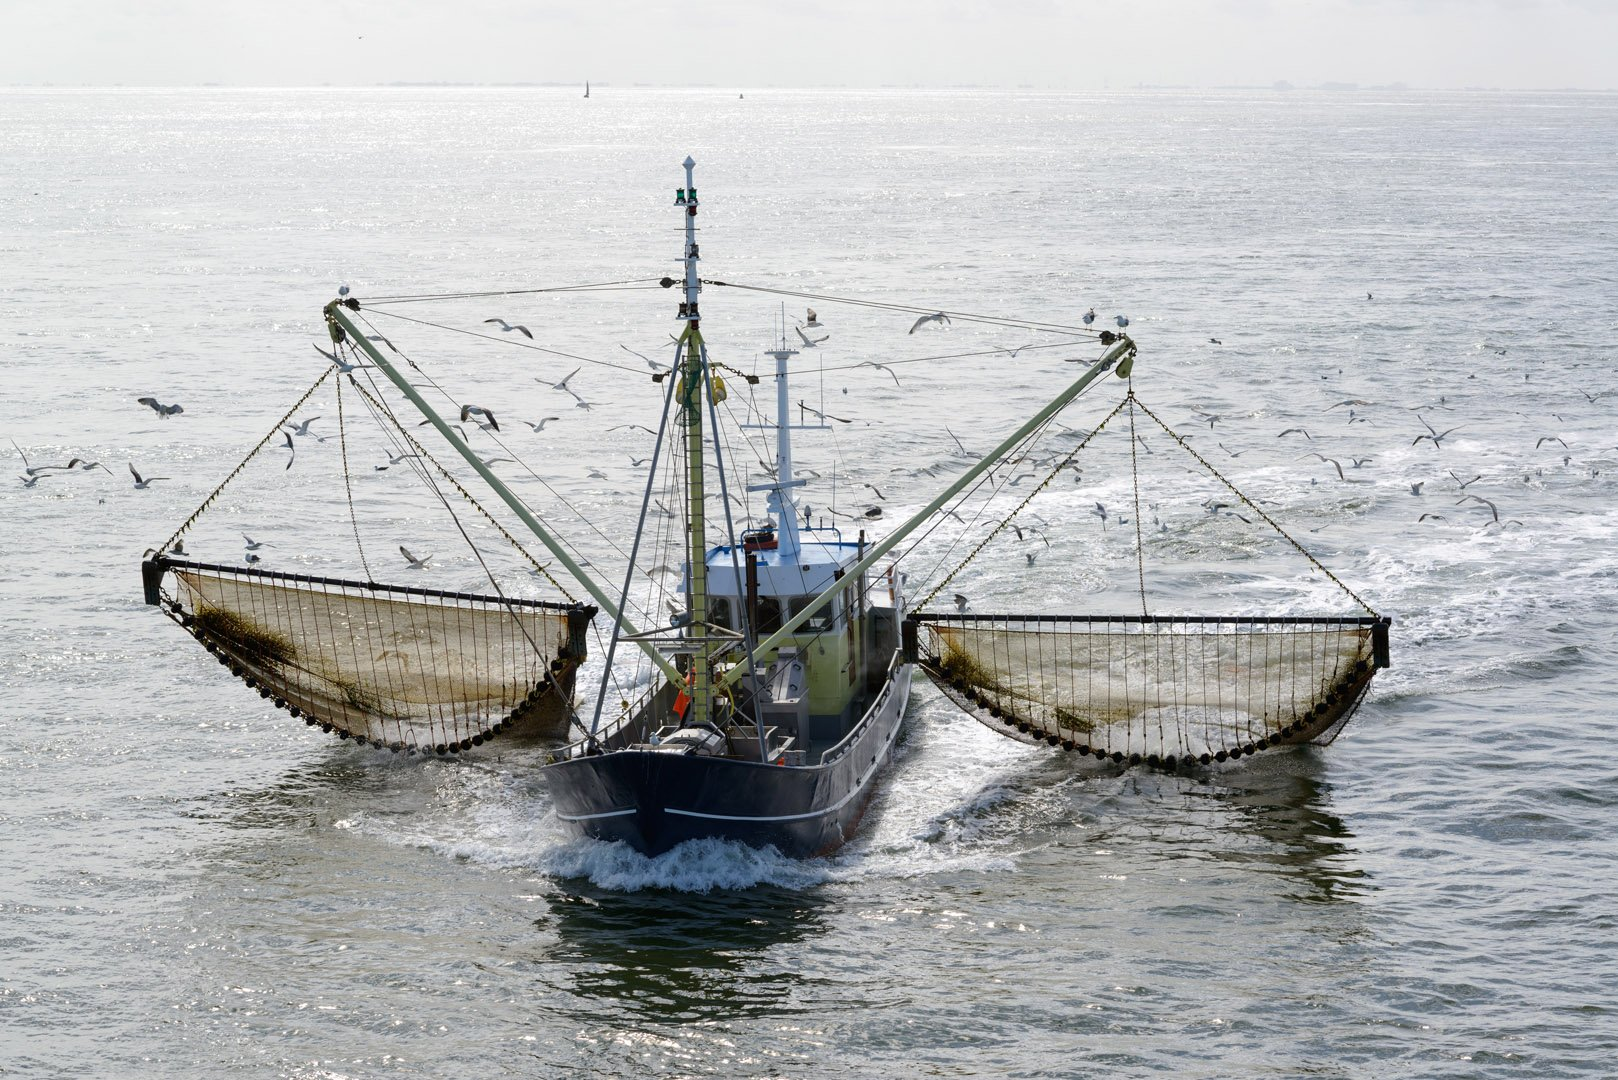 Full ban on electric fishing: one cataclysm averted, but more on their way warns Parisian based NGO, BLOOM